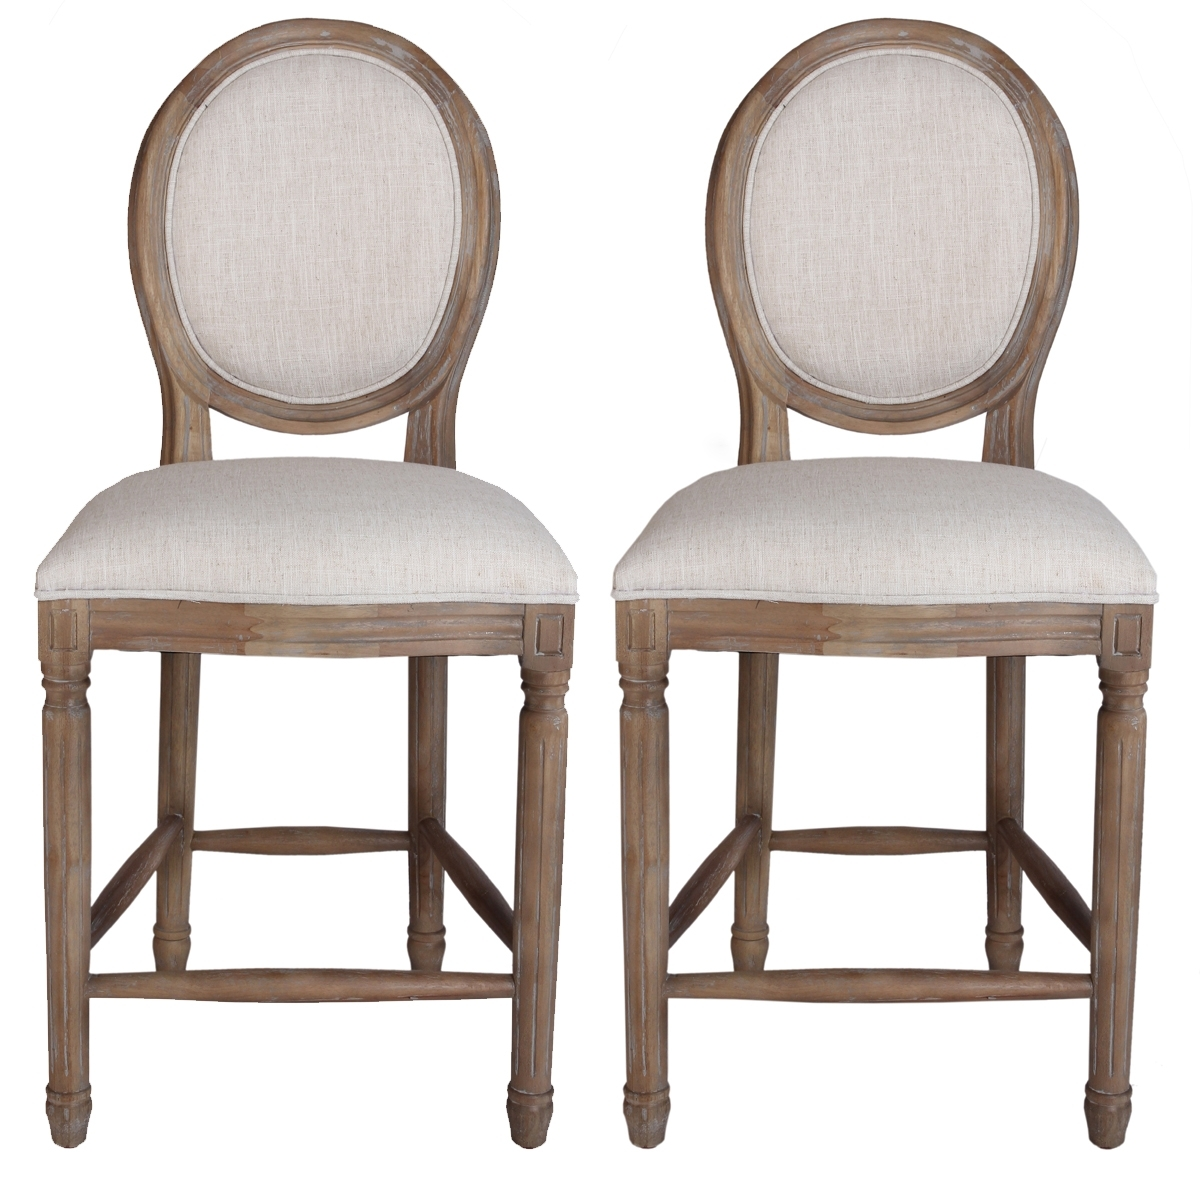 Furniture: French Country Bar Stools For Your Home Bar Or Kitchen With French Country Counter Stools (Image 15 of 20)